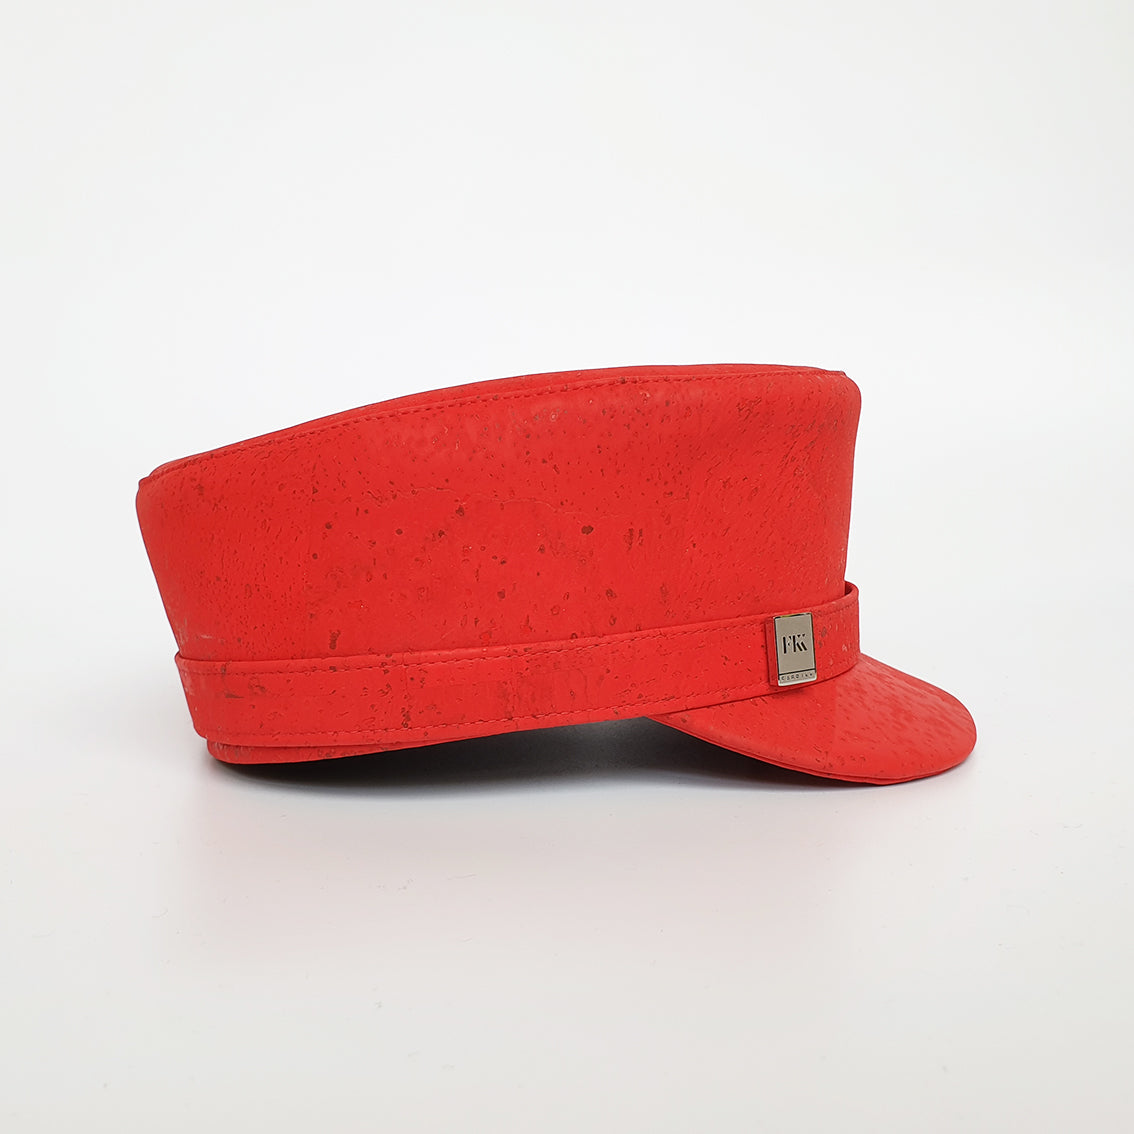 Fabrikk Cork 'Love Train' Hat | Red | Vegan Leather